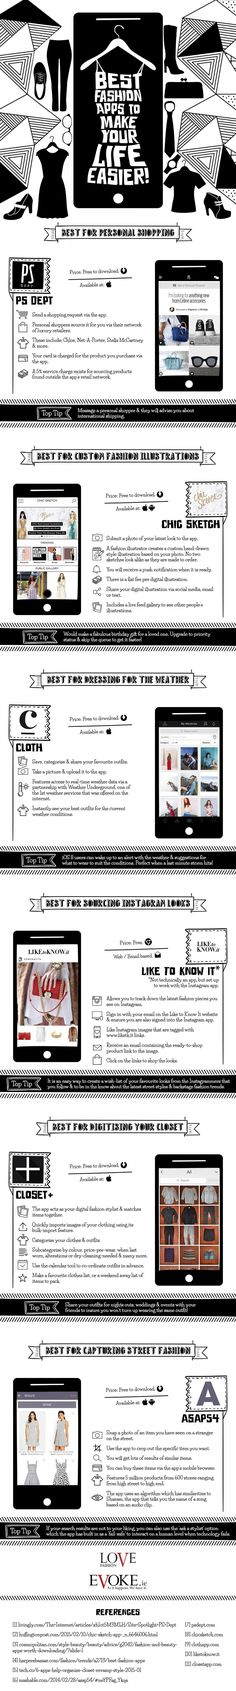 Best Fashion Apps to Make Your Life Easier #Infographic #Apps #Fashion